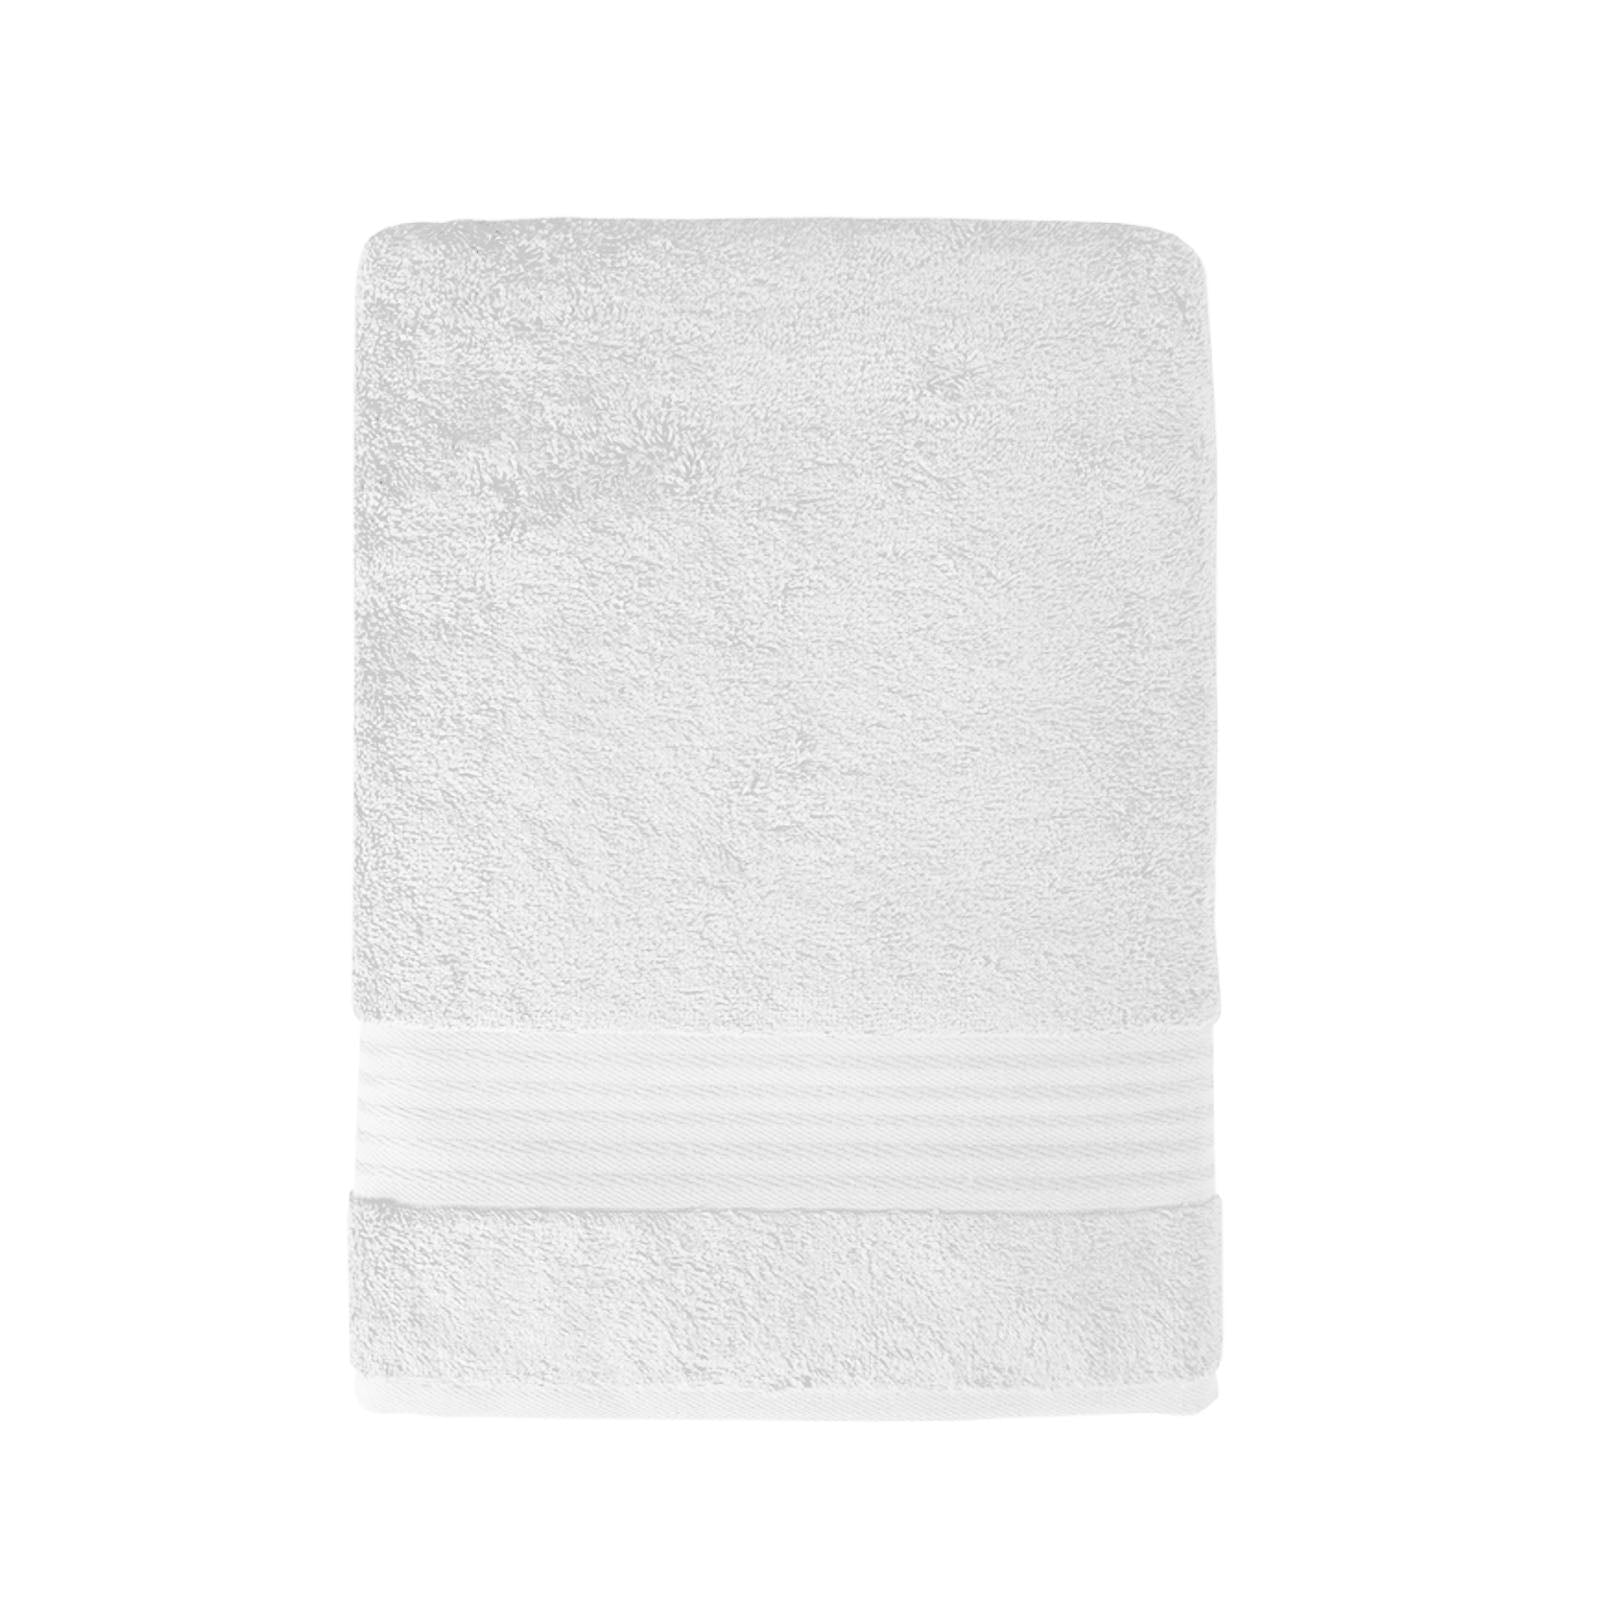 85X150 PURE SOFT towel  200.05.01.0270 - ebarza